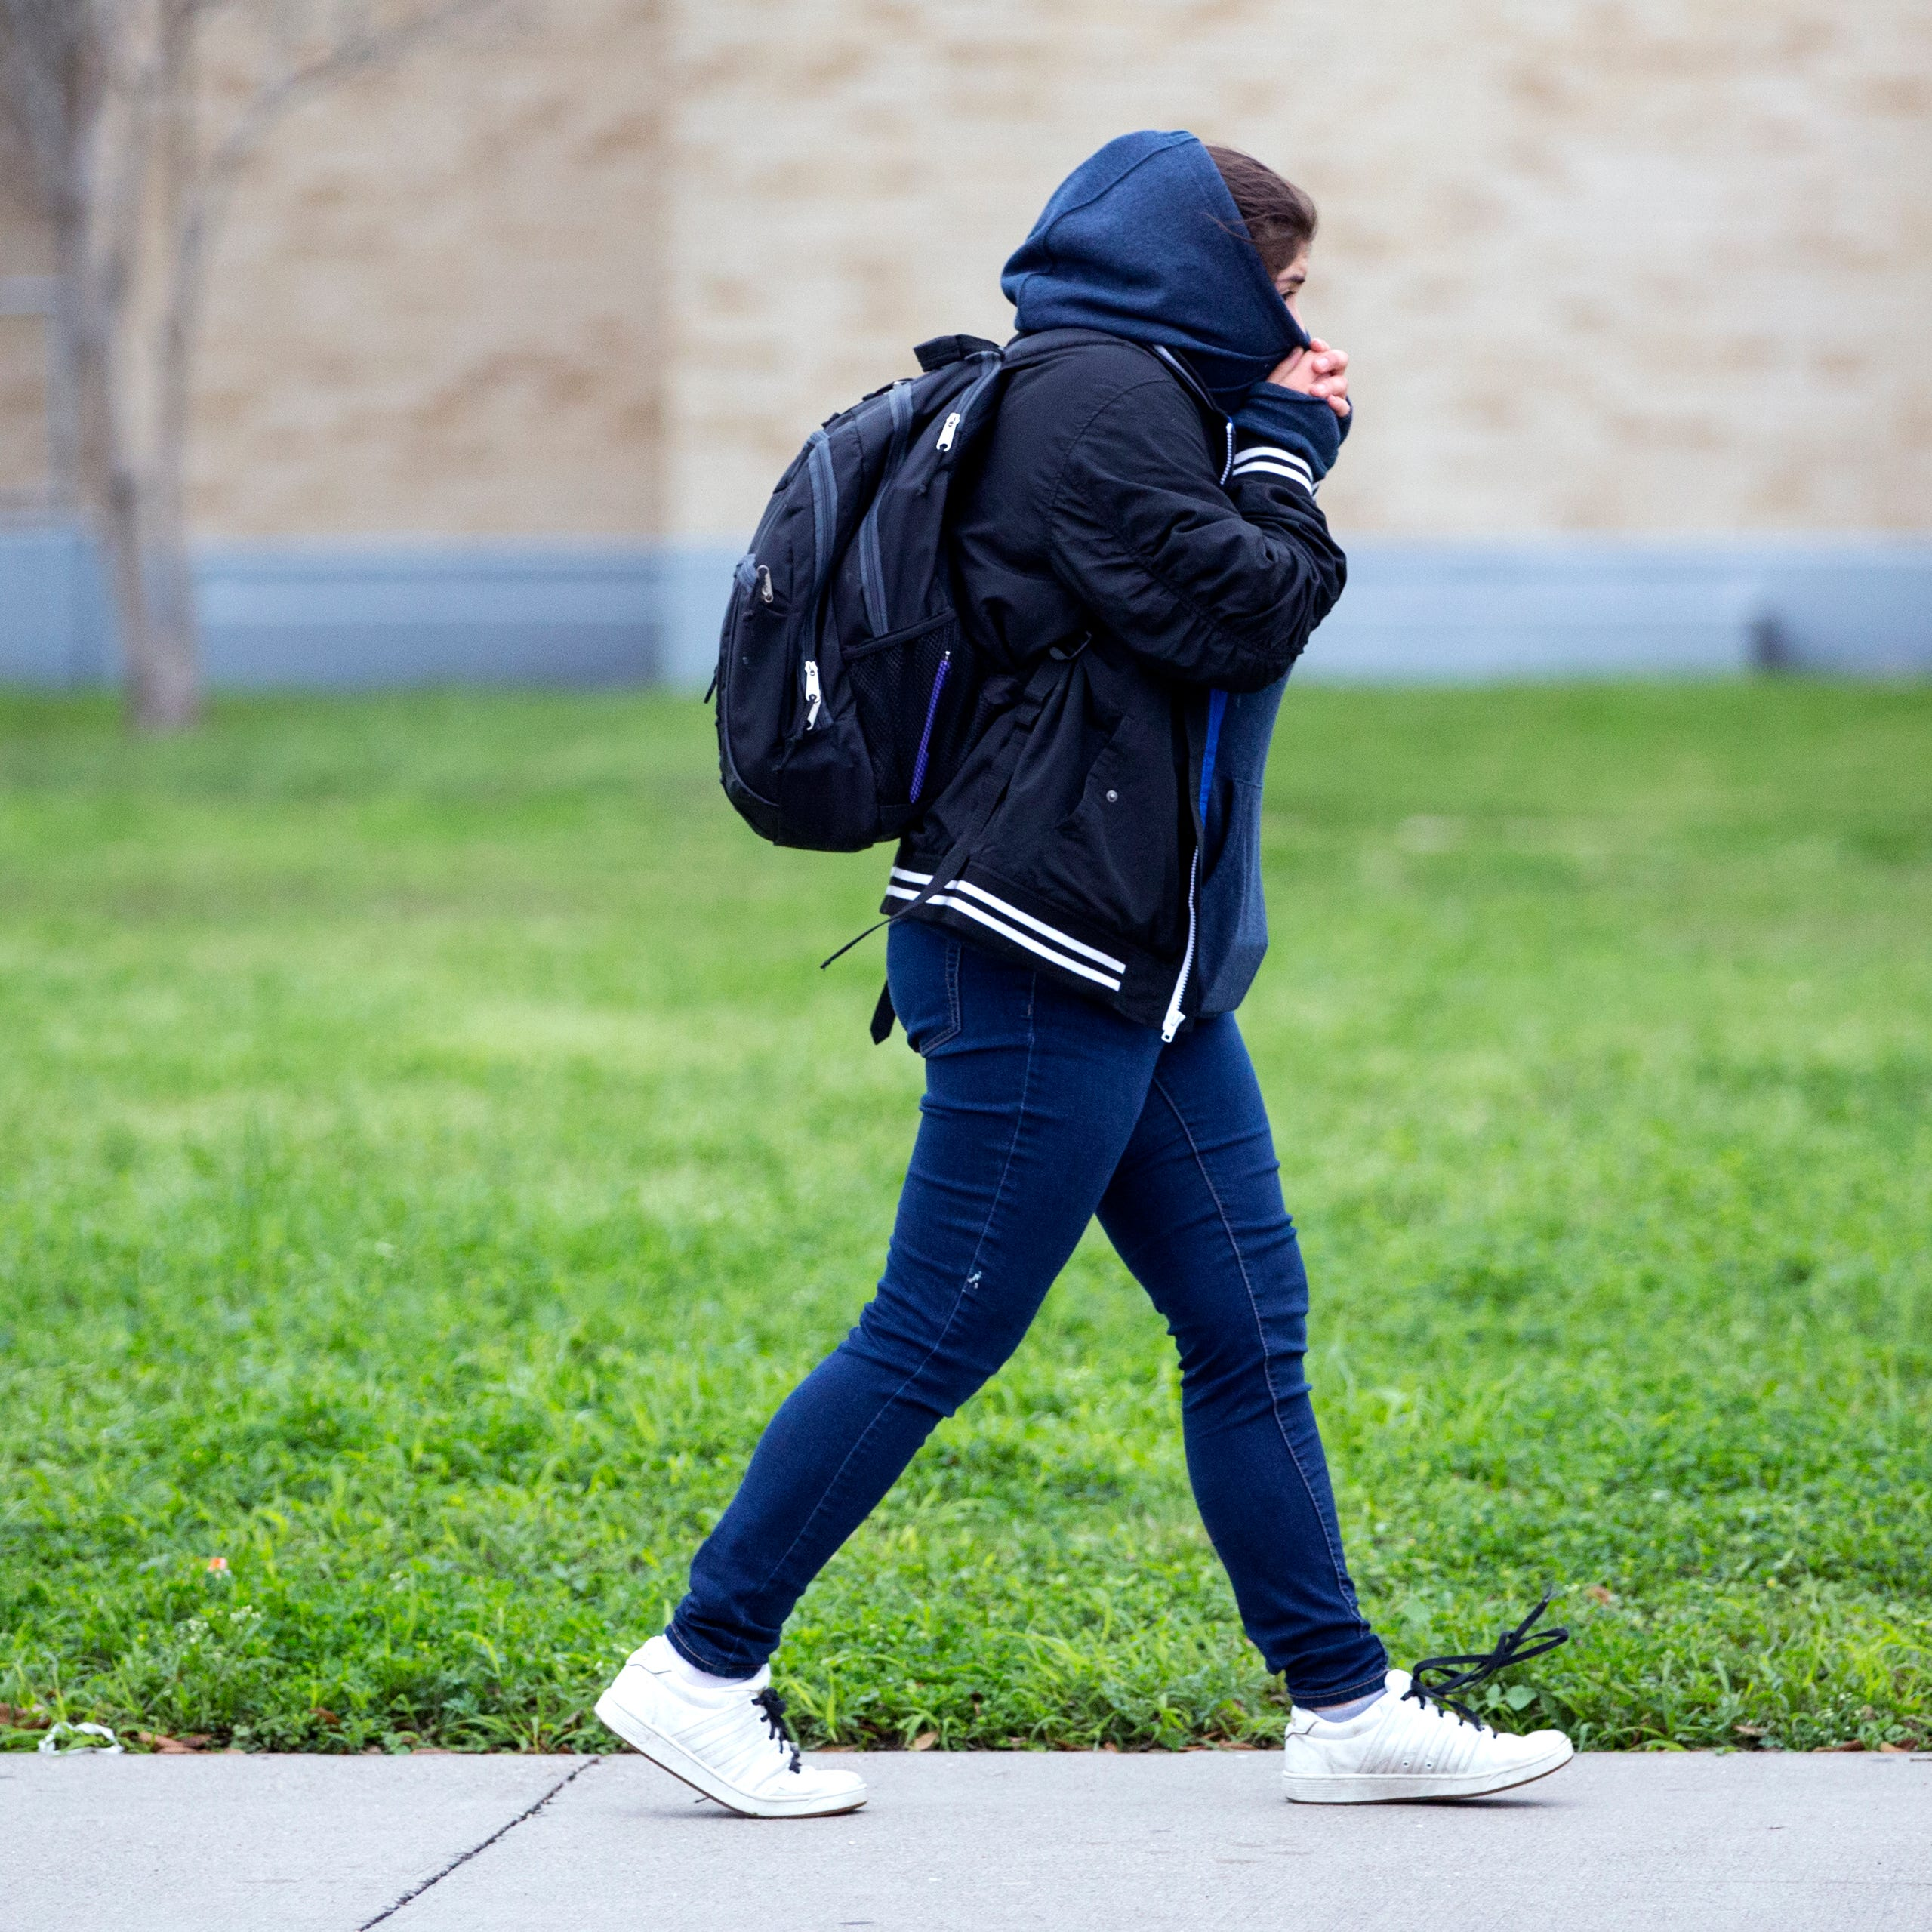 A Ray High School student walks to school on Monday, March 4, 2019. After a strong cold front moved into the Corpus Christi area Sunday afternoon, temperatures were in the upper 30s Monday morning with wind chills in the 20s.